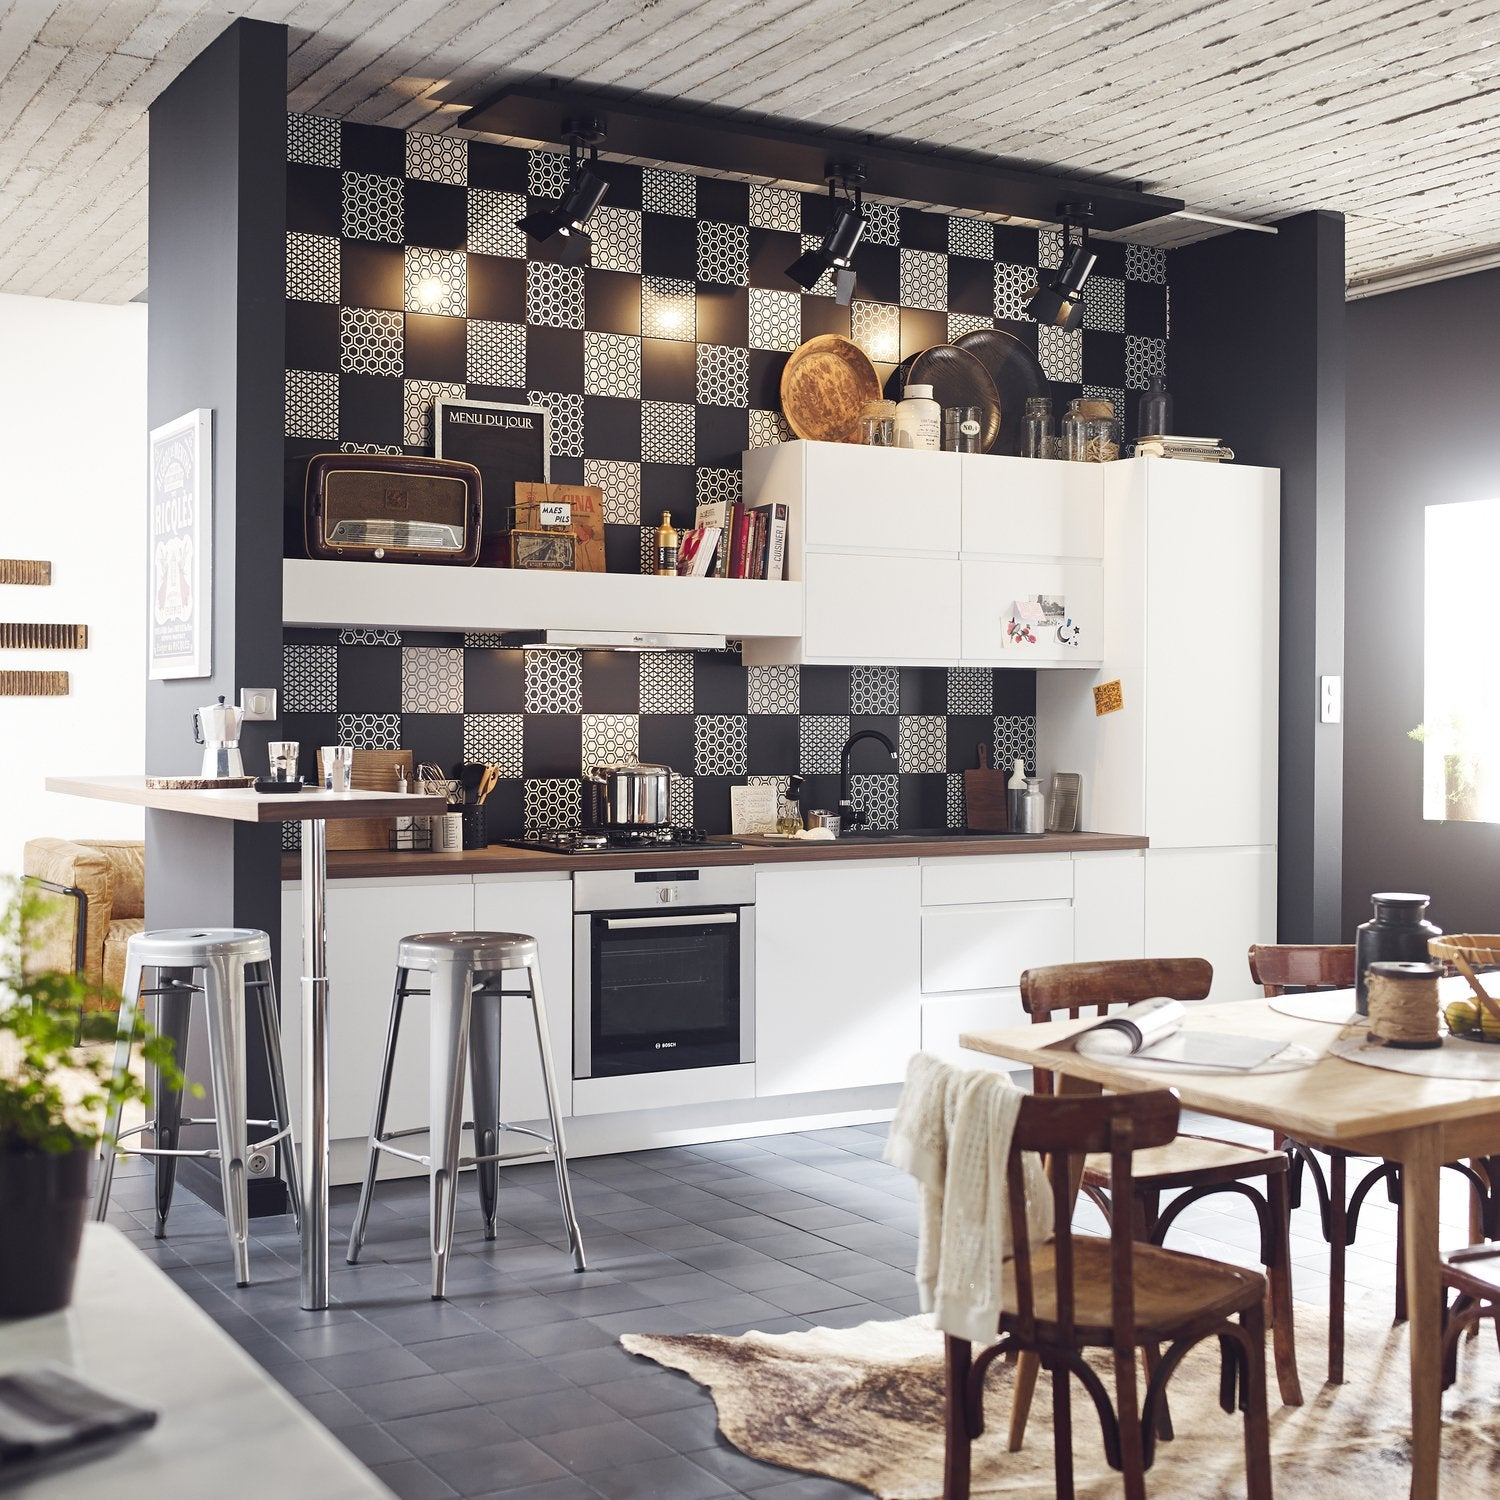 Credence Cuisine Noir Et Blanc #14: Exceptionnel Credence Cuisine Noir Et Blanc #11: Vintage Bilbao Peel And  Stick Smart Tiles. Especially Designed For Kitchen And Bathroom  Environments, ...